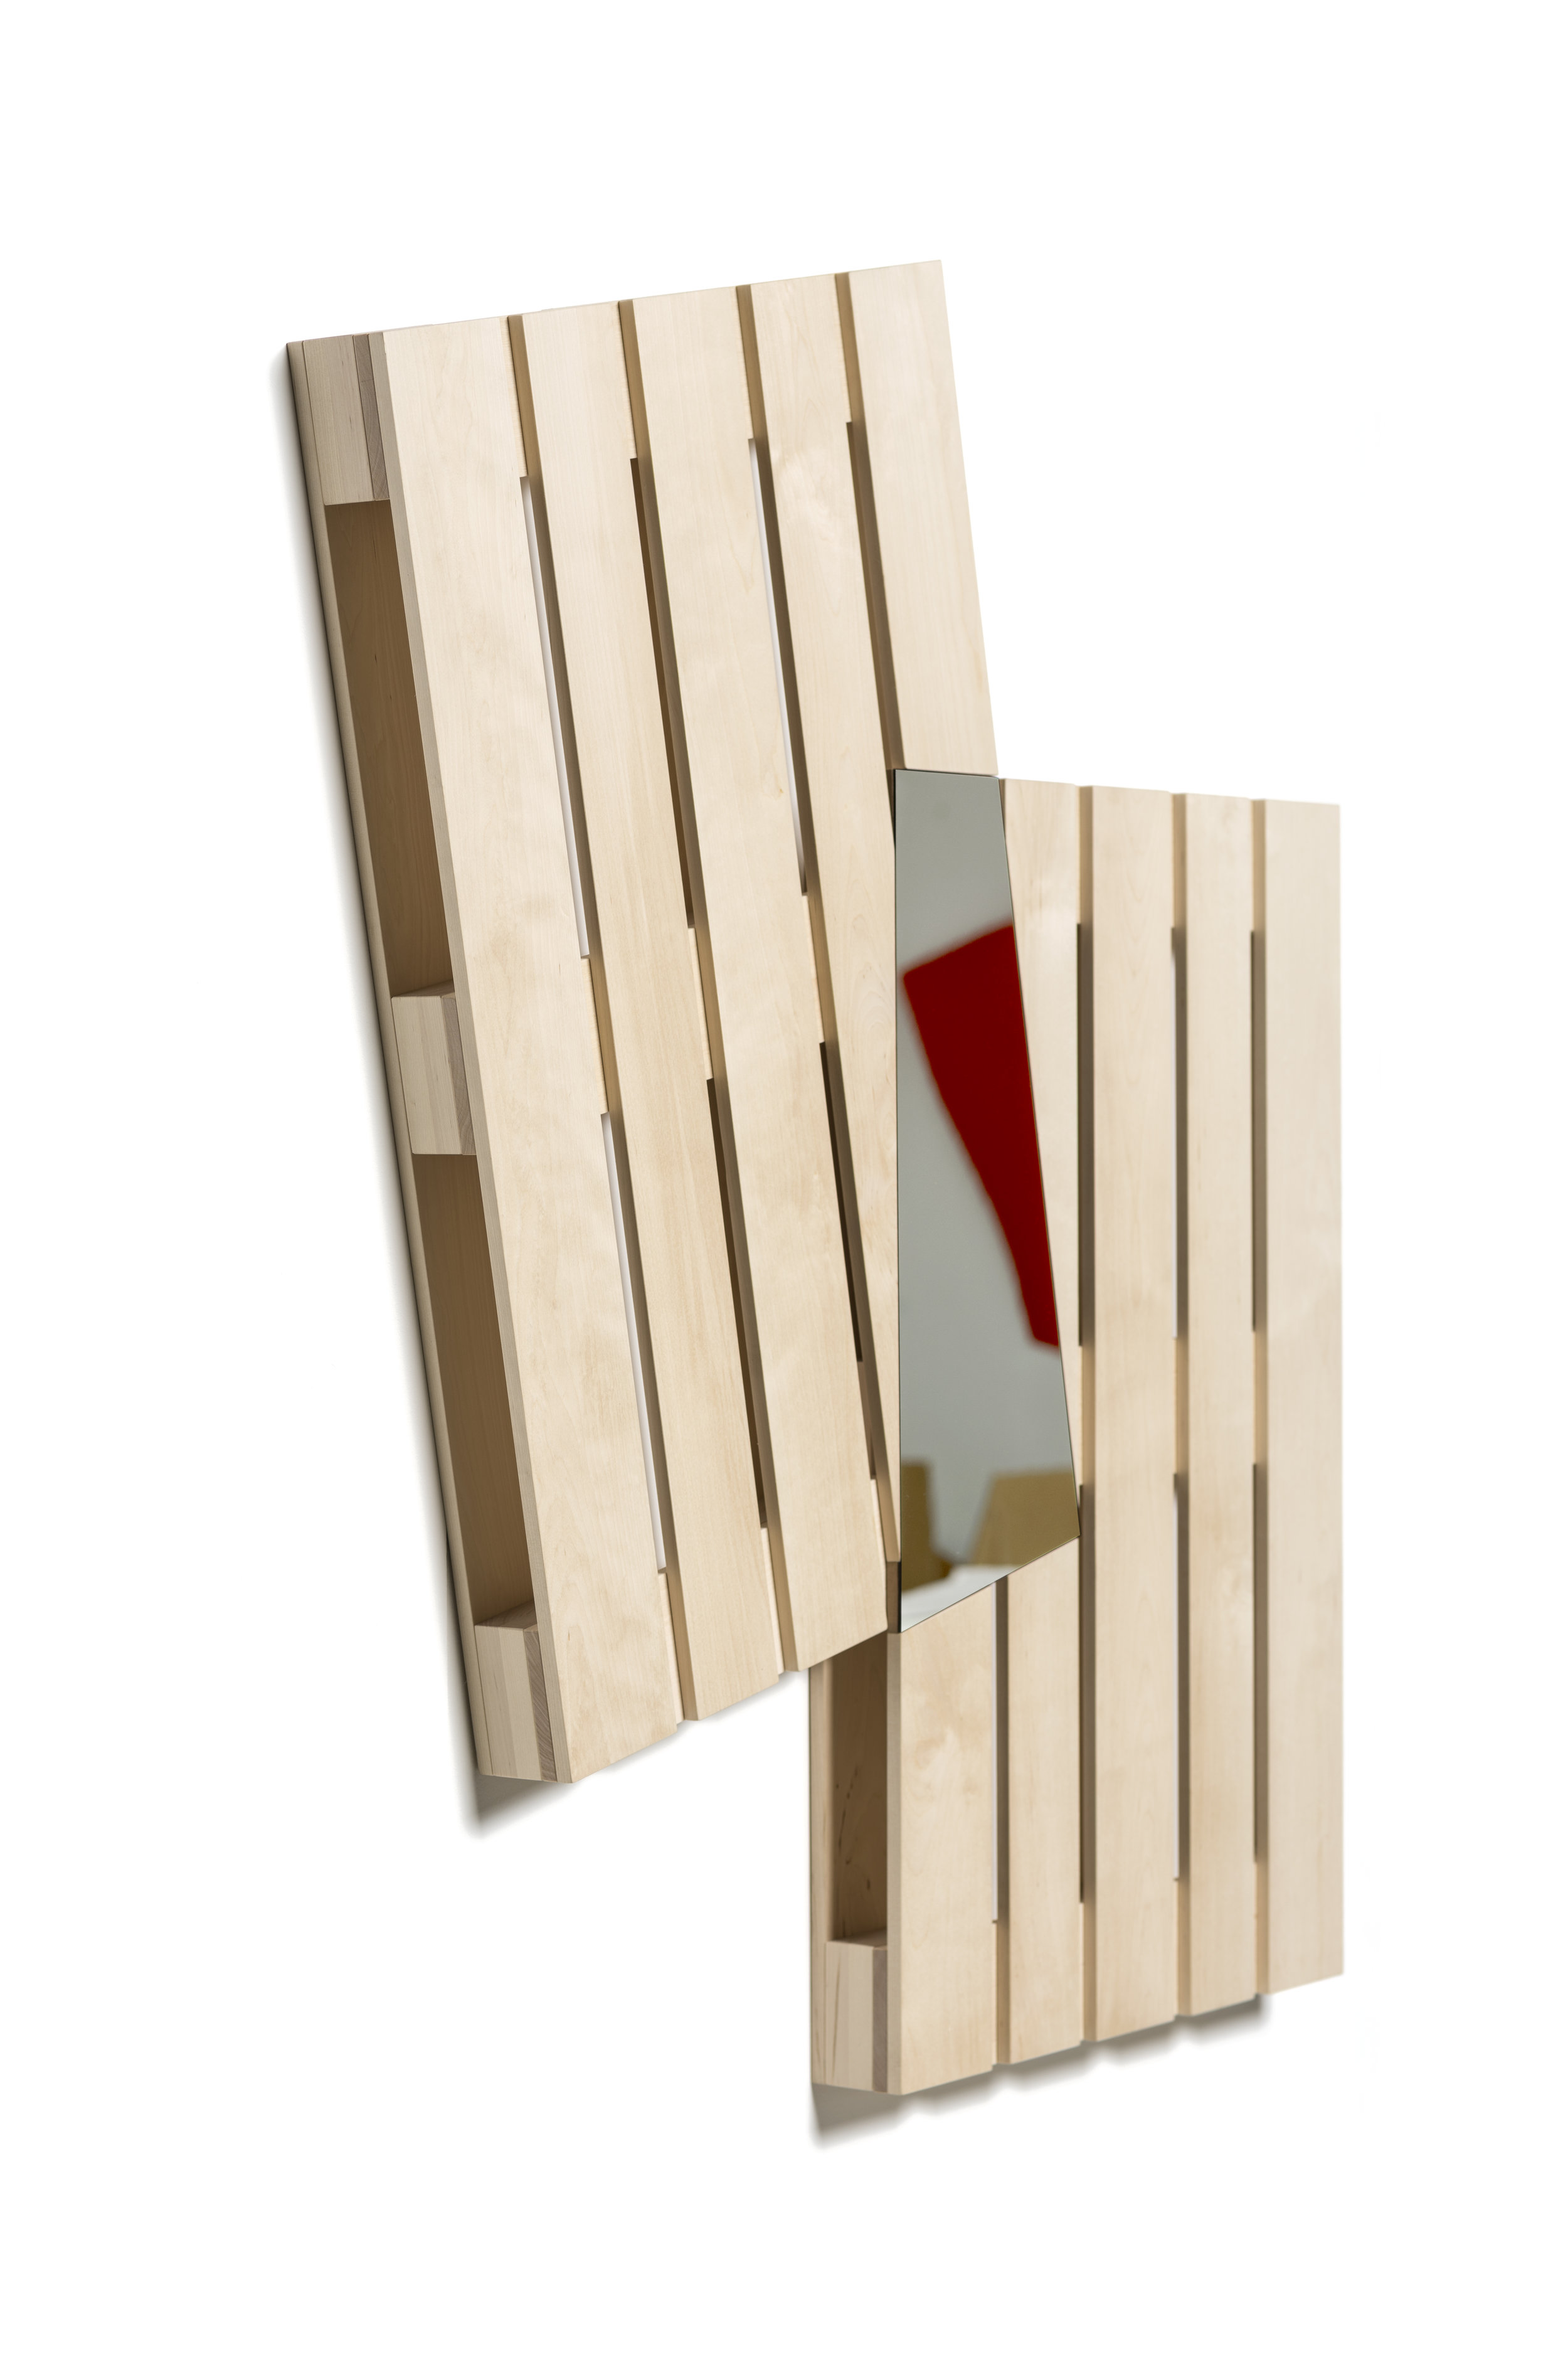 Mirror Wall Pallet 01 S-1148 sideview.jpg